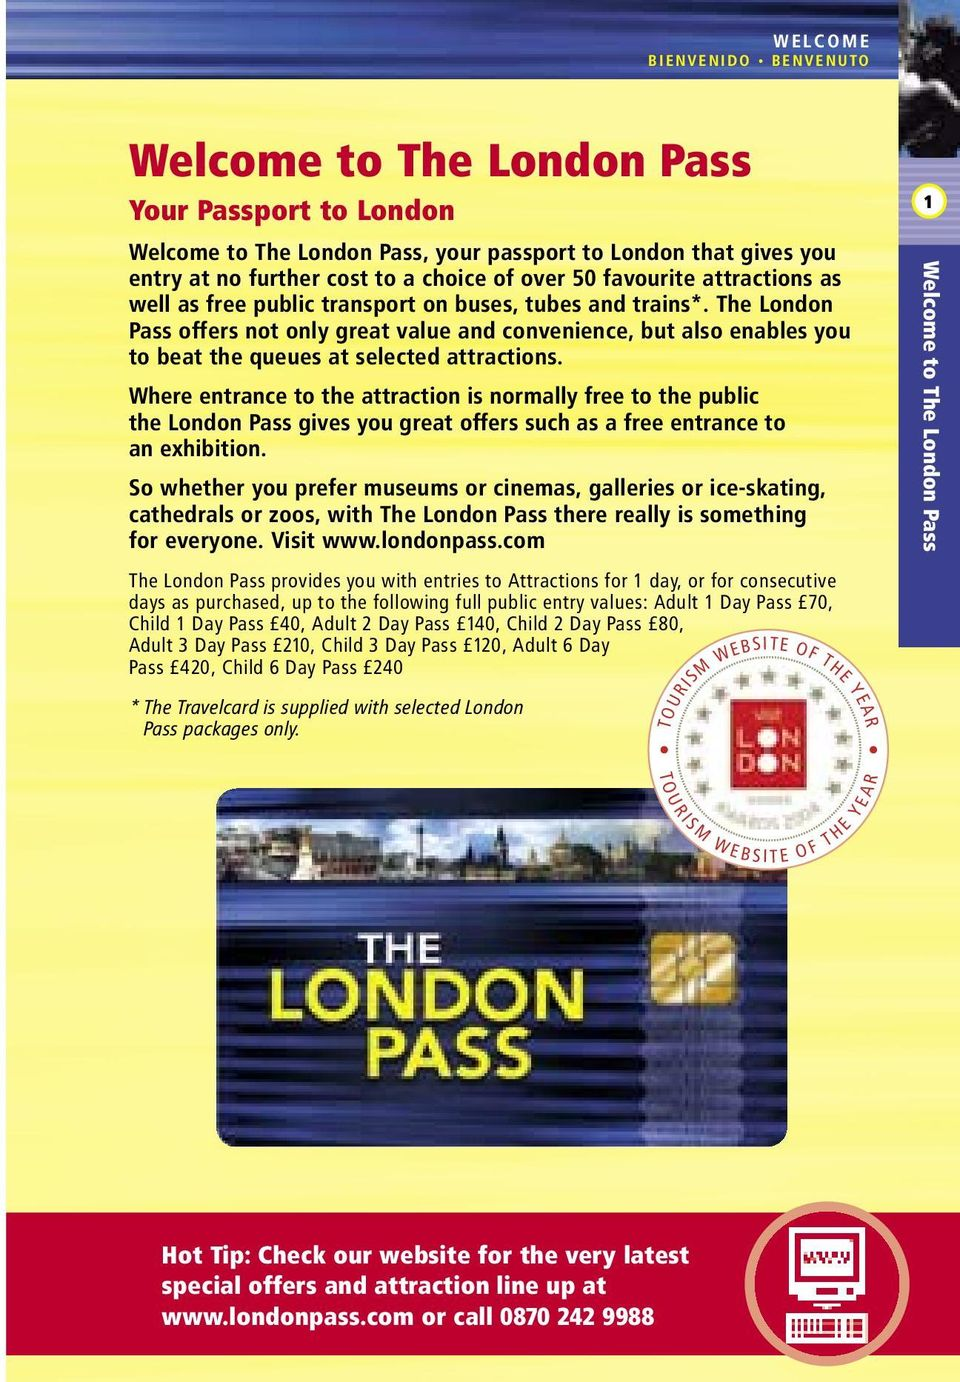 The London Pass offers not only great value and convenience, but also enables you to beat the queues at selected attractions.